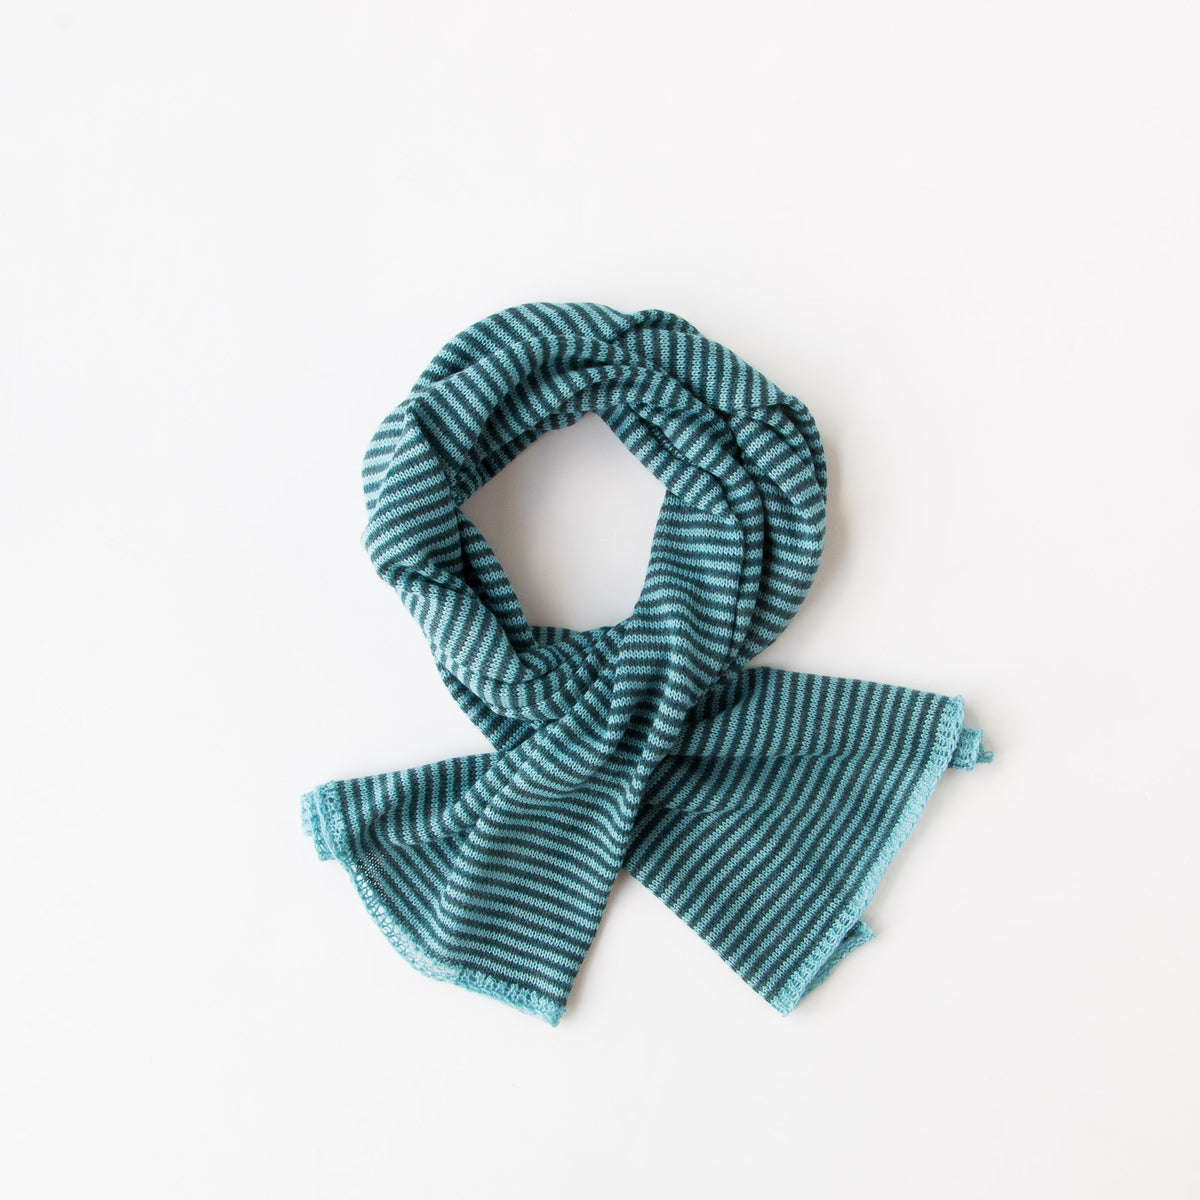 Aqua & Ocean - Baby Alpaca - Unisex Scarf With Fine Stripes & Contrasting Hems - Sold by Chic & Basta